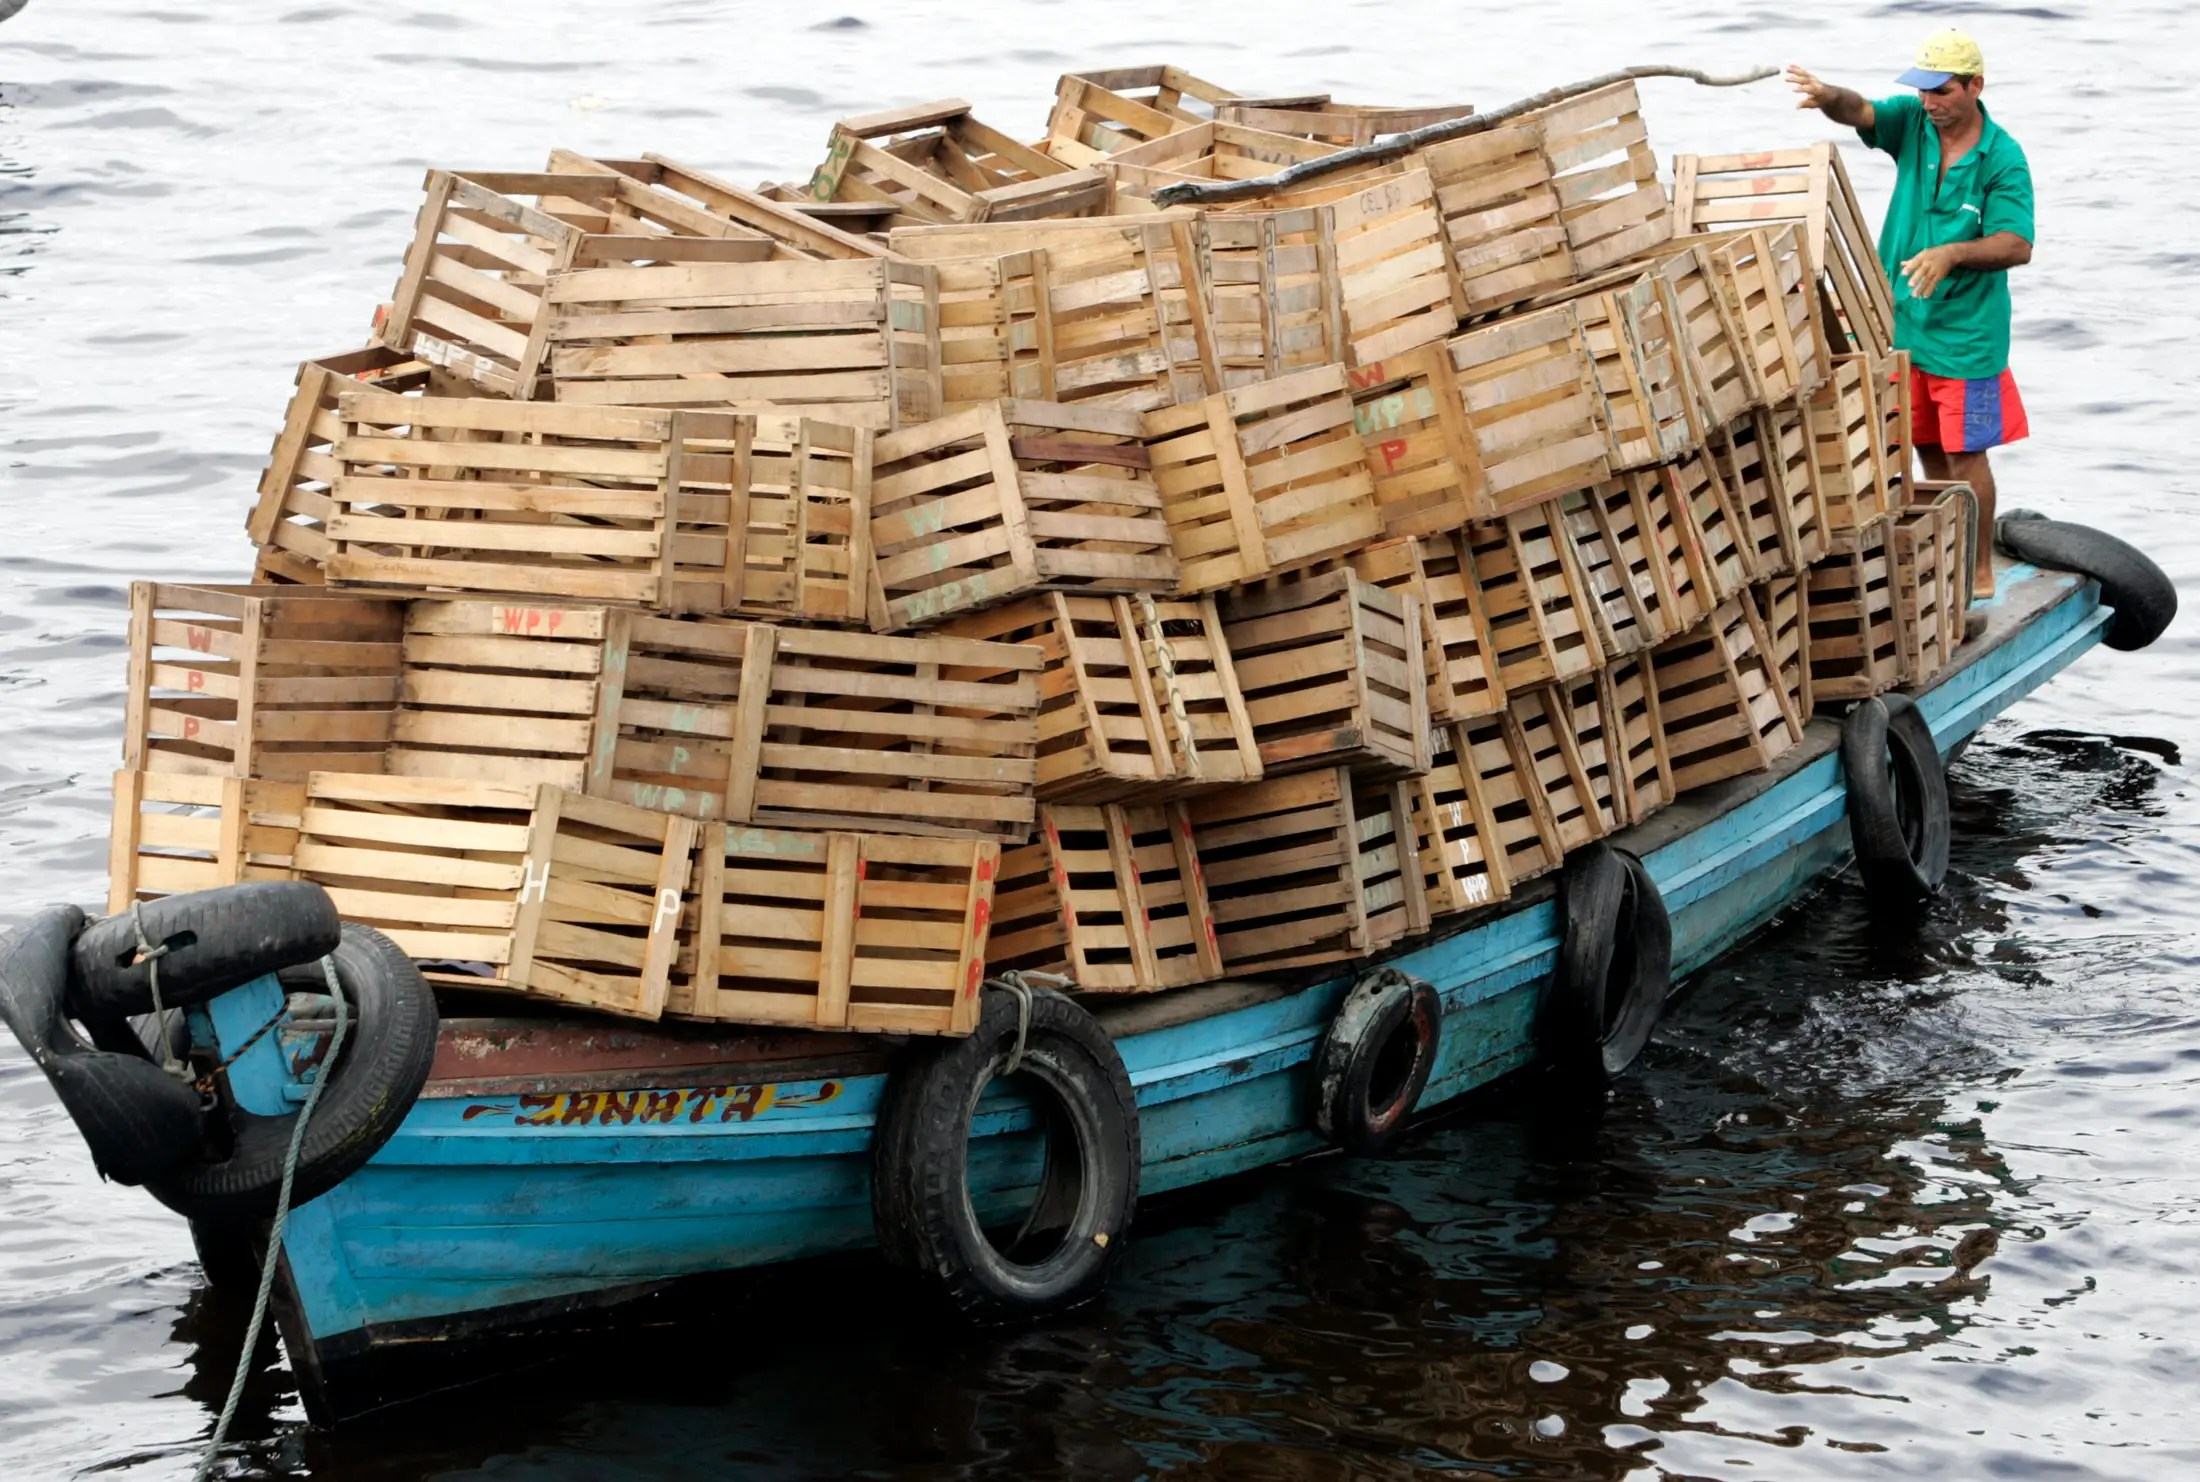 A riverboat in Amazonas, Brazil is overloaded with empty boxes.